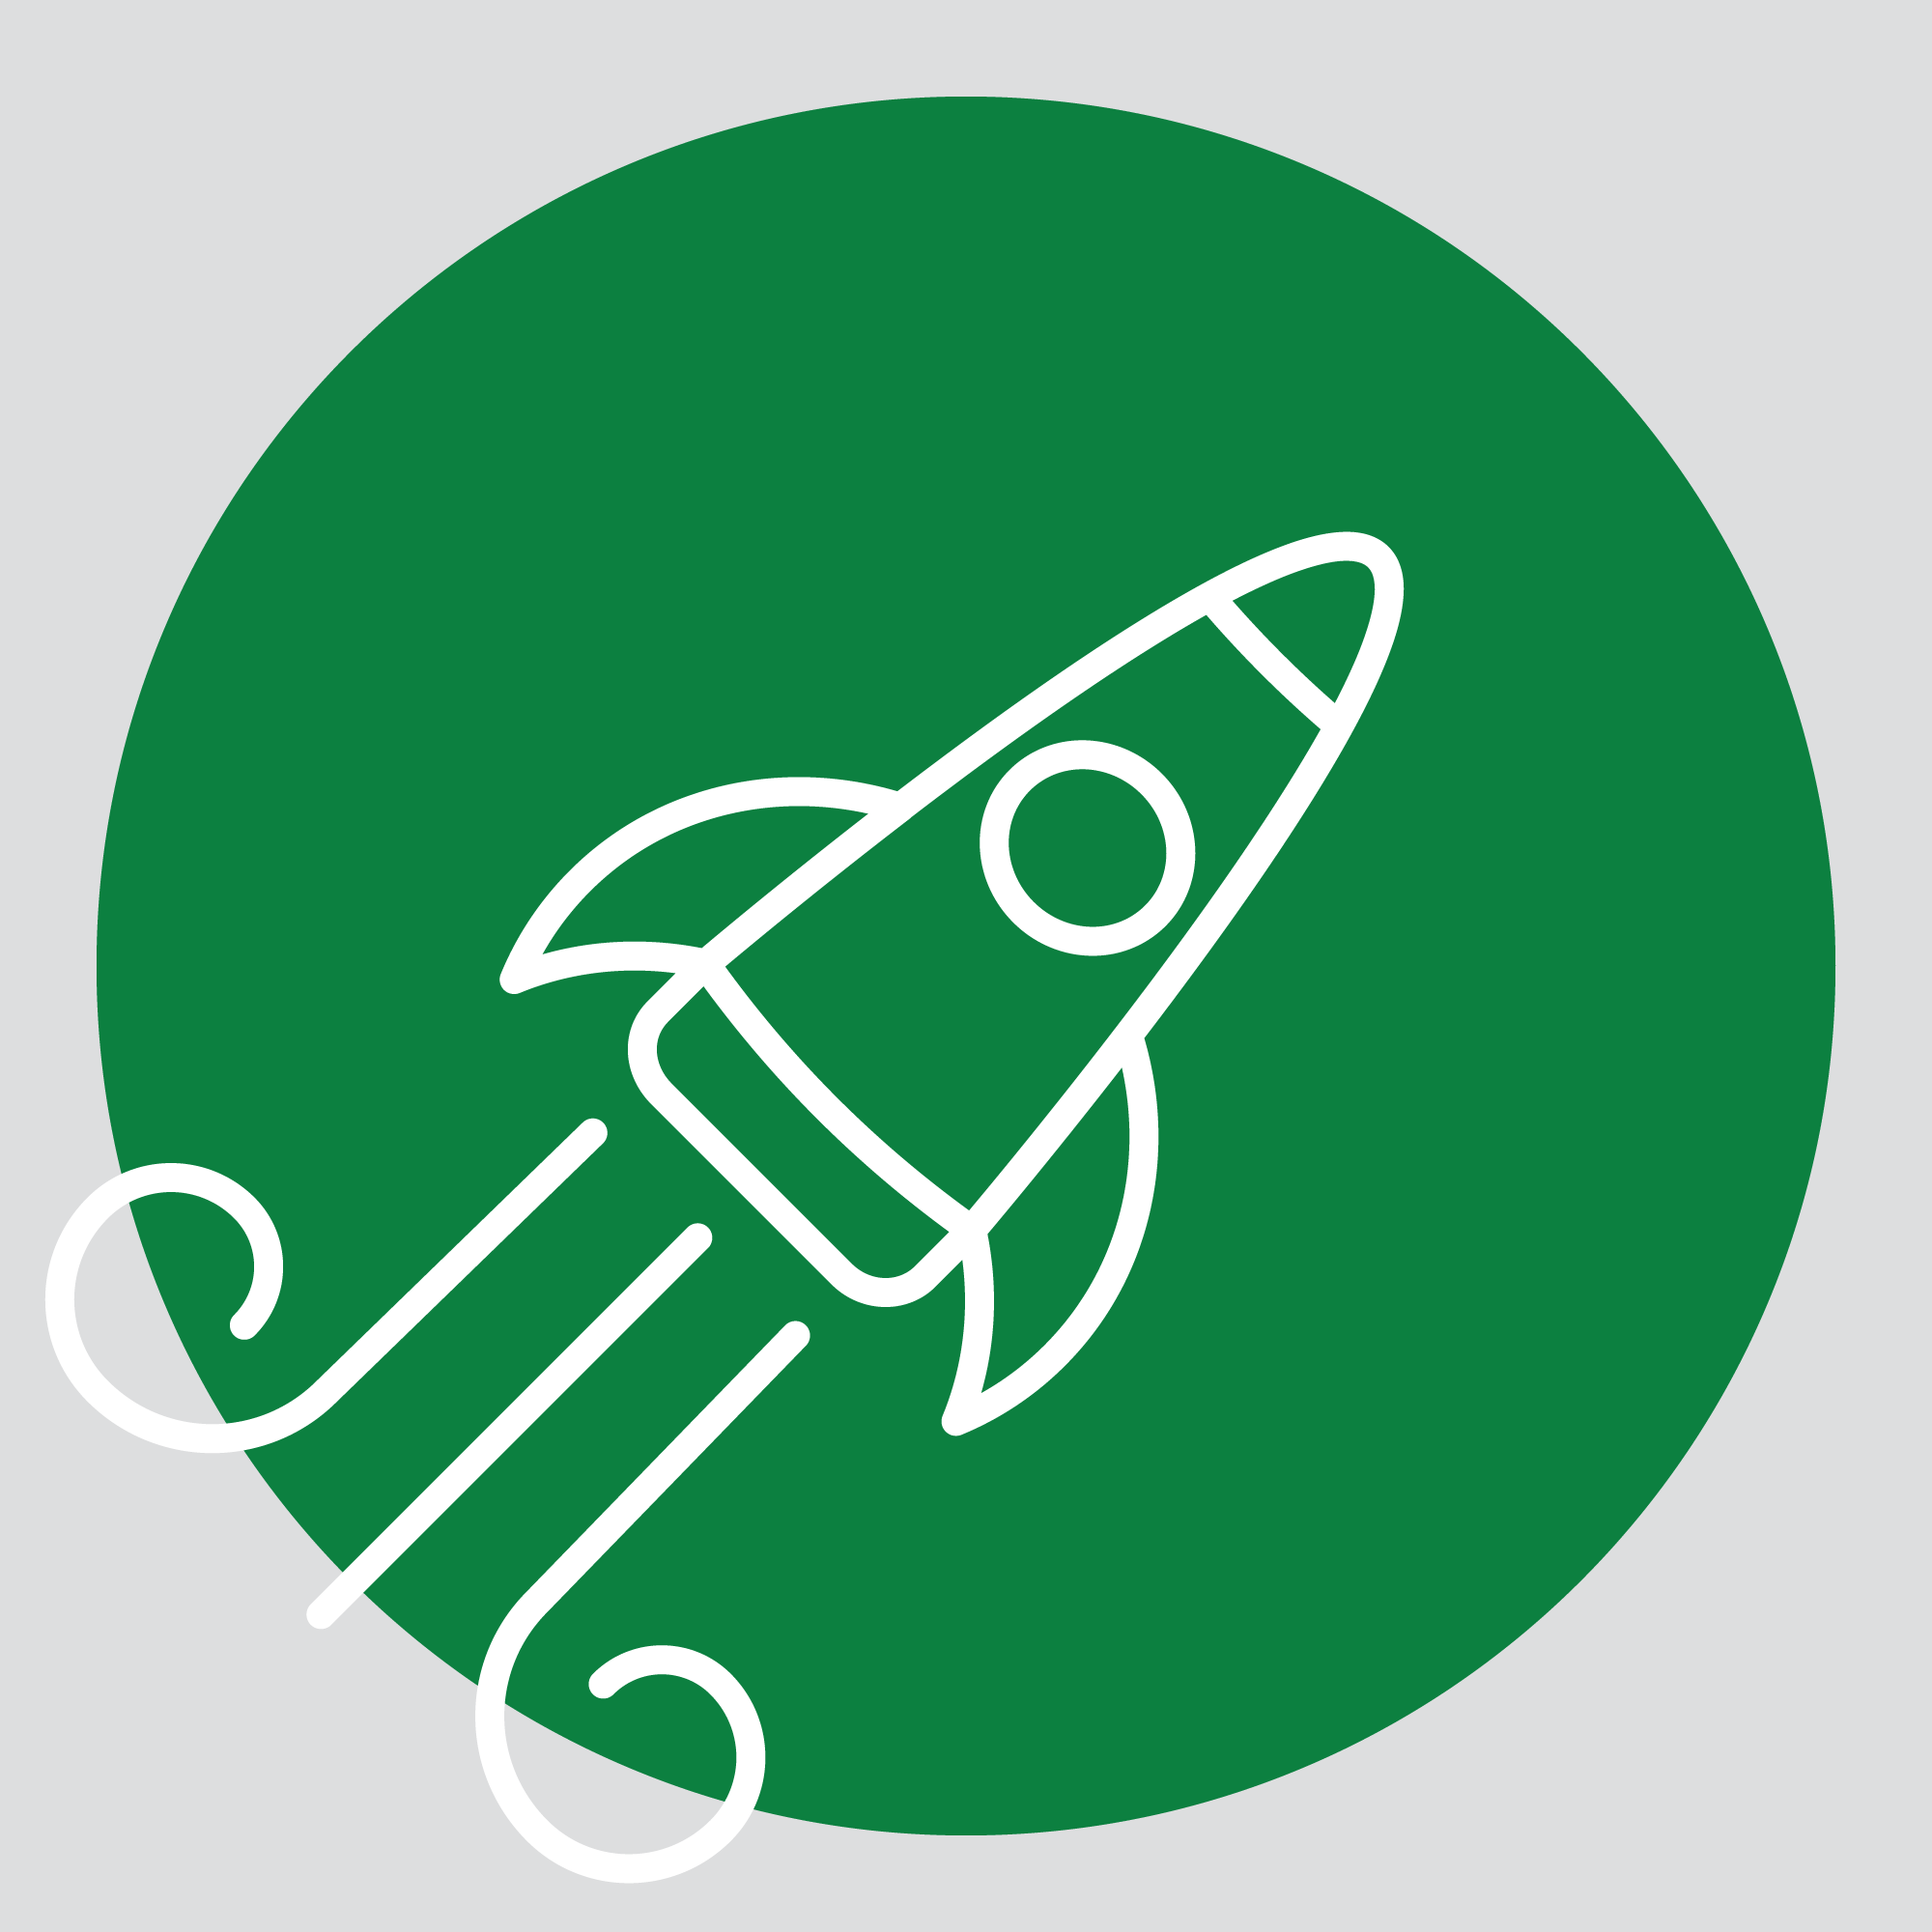 rocket-icon-featured-image